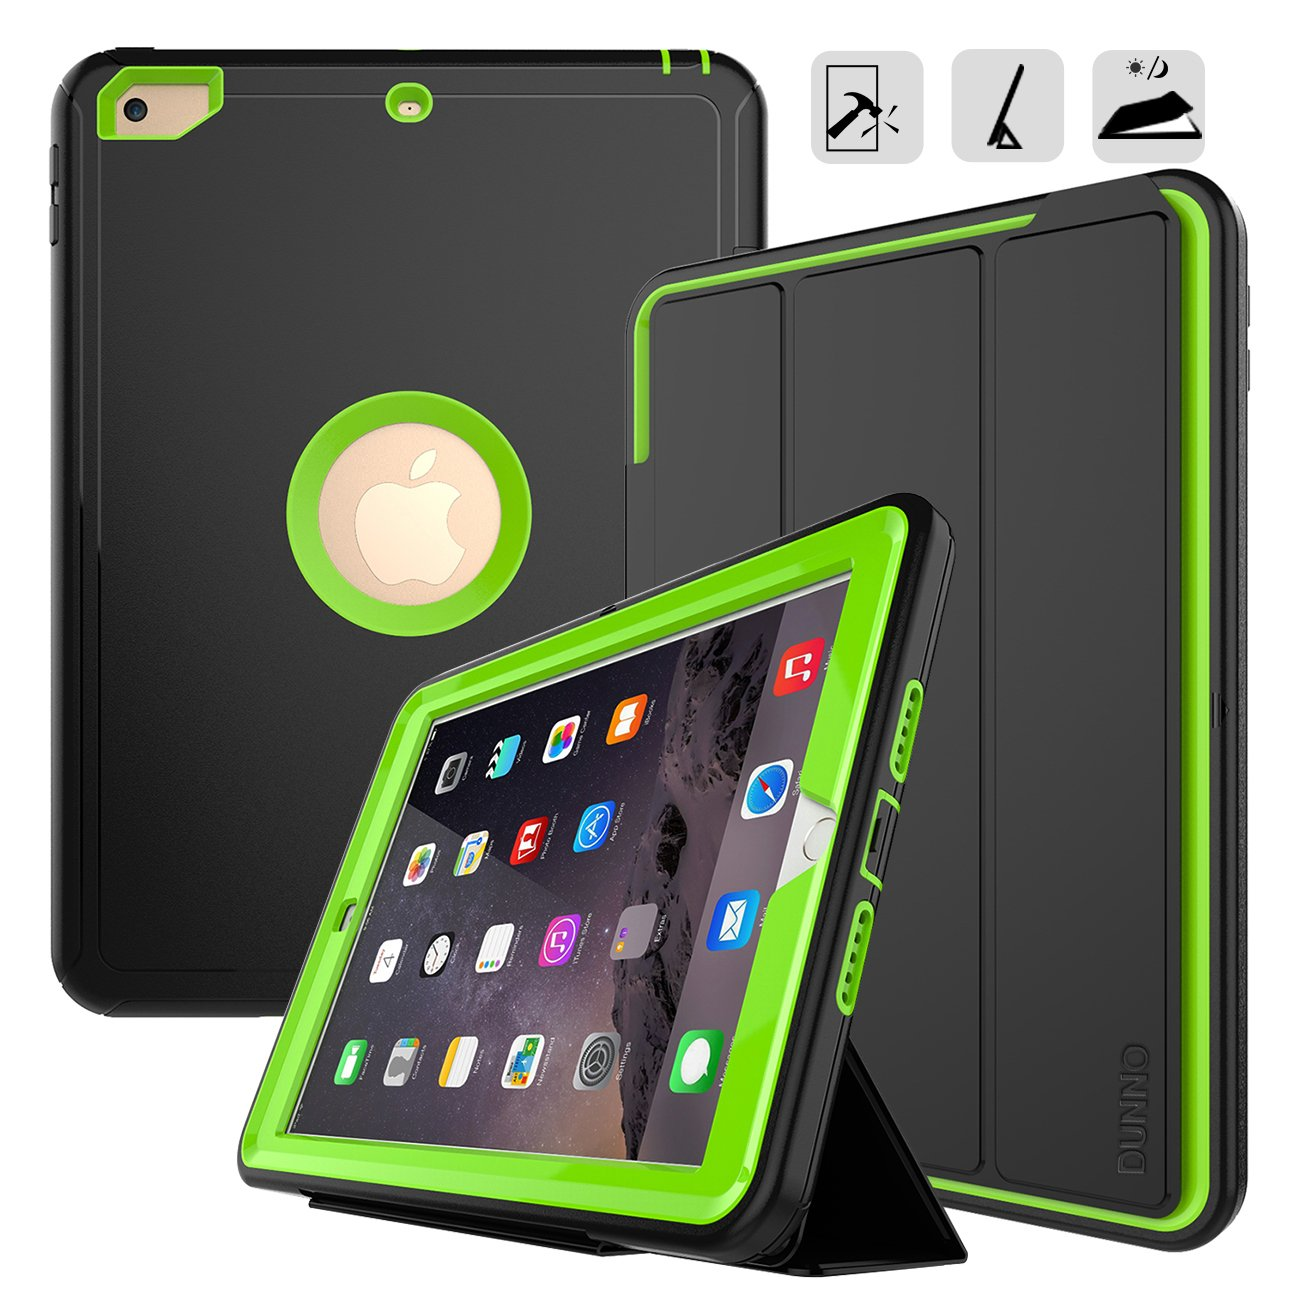 iPad 9.7 2017/2018 case - DUNNO Heavy Duty Full Body Rugged Protective Case with Auto Sleep/Wake Up Stand Folio & Three Layer Design for Apple iPad 9.7 inch 2017/2018 (Black+Green)